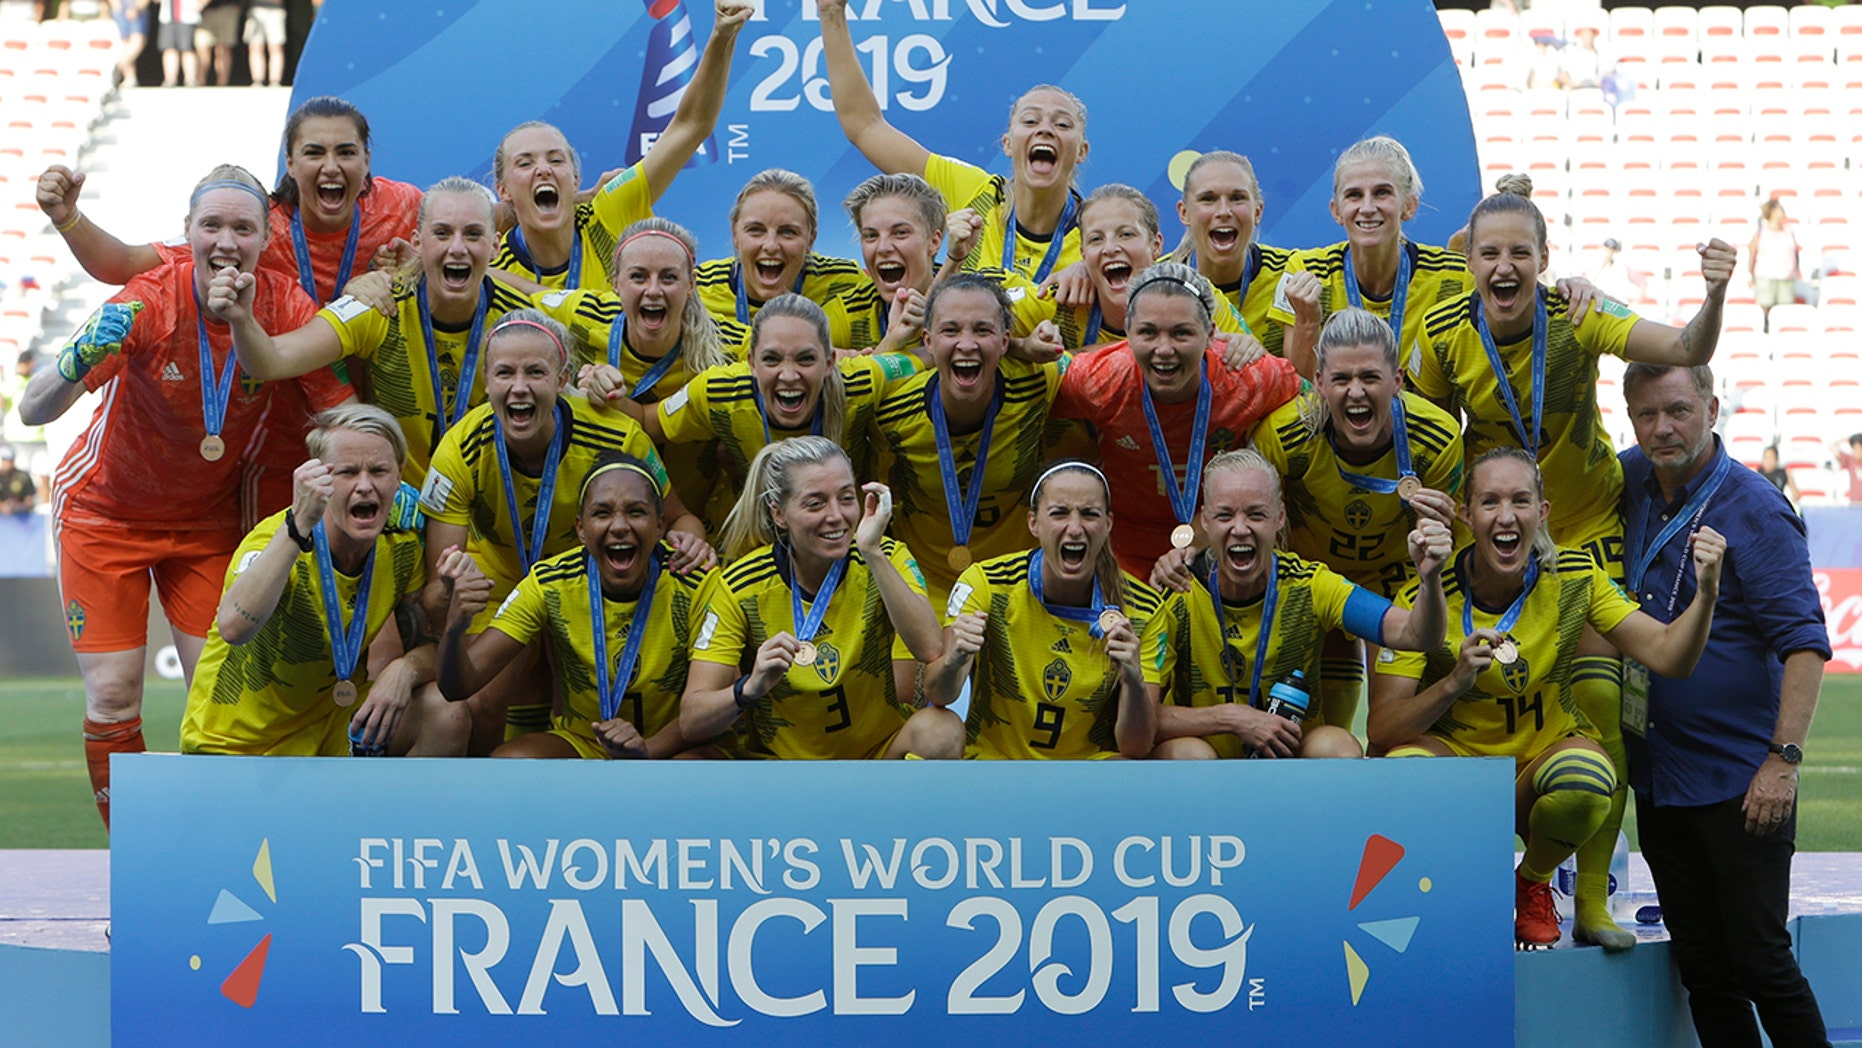 Sweden players applaud with their bronze medals after a Women's World Cup third place soccer compare between England and Sweden during Stade de Nice, in Nice, France, Saturday, Jul 6, 2019. (AP Photo/Claude Paris)